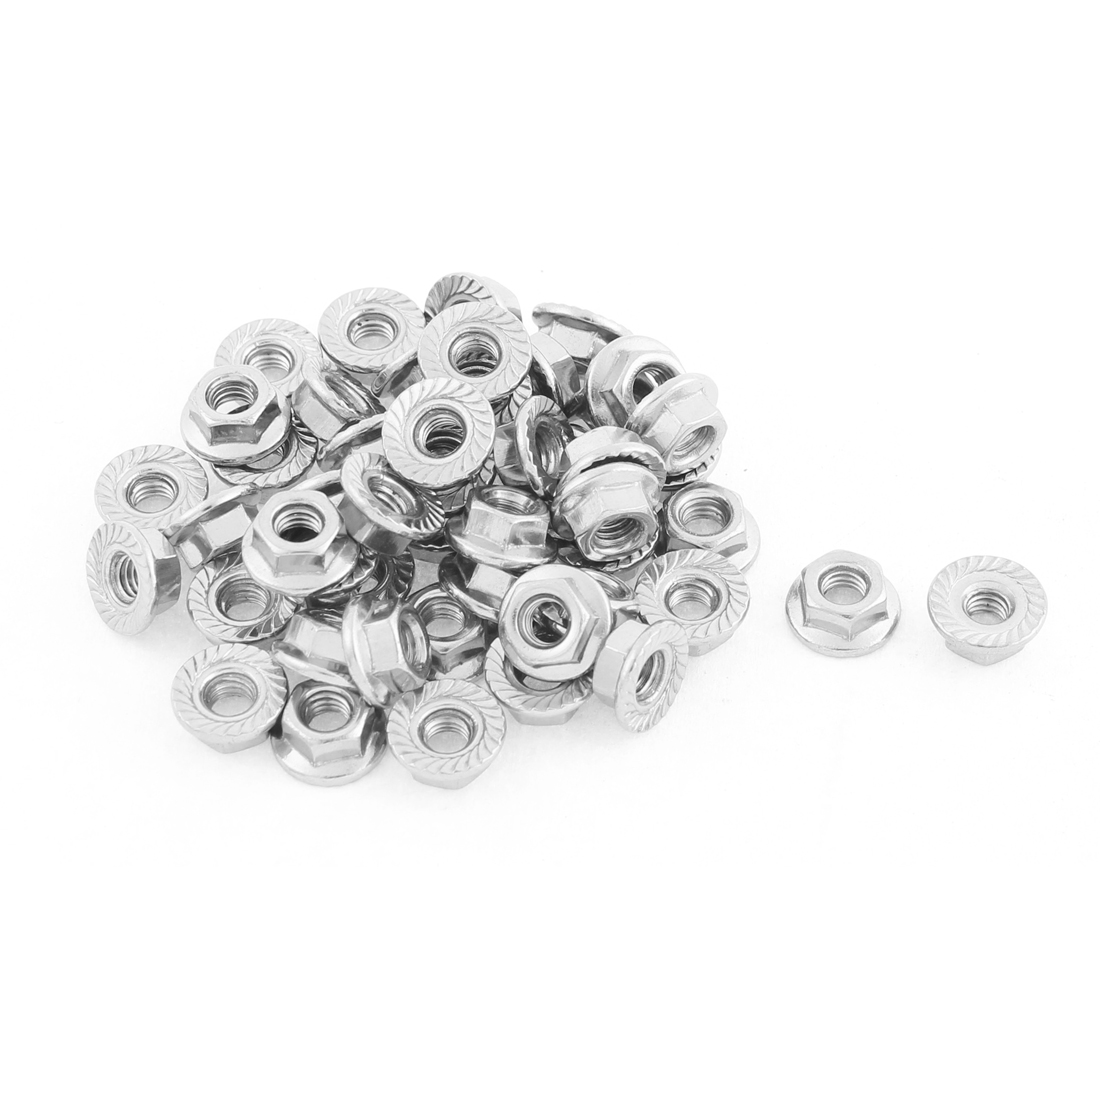 M4 Thread Dia Stainless Steel Hex Hexagon Flange Lock Nuts 50pcs